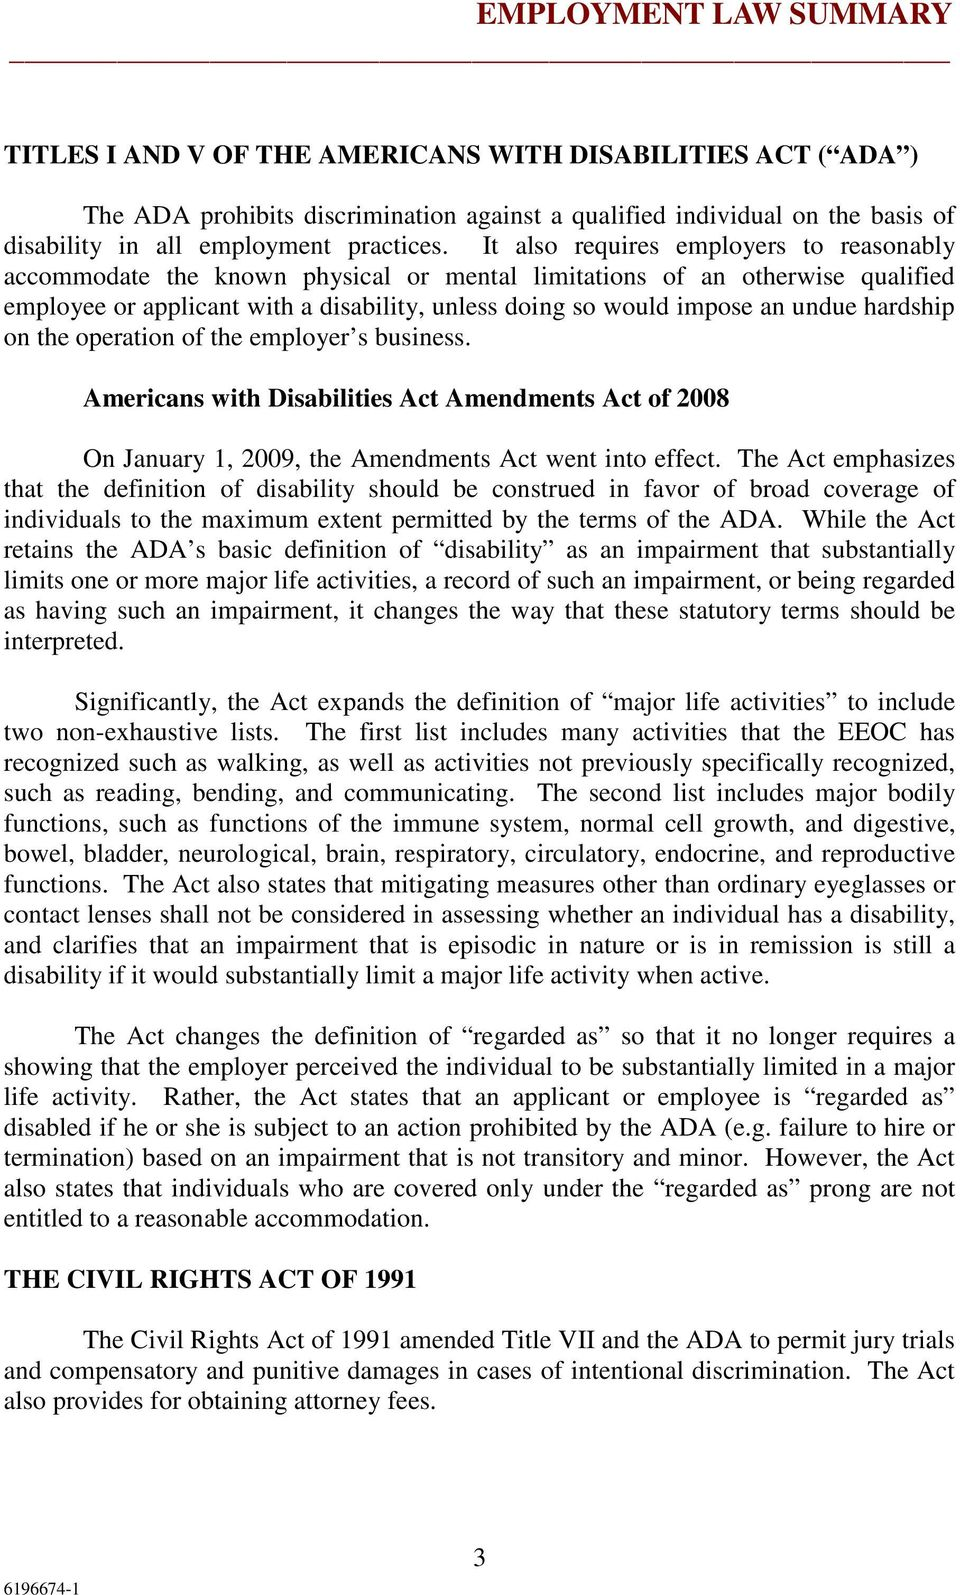 hardship on the operation of the employer s business. Americans with Disabilities Act Amendments Act of 2008 On January 1, 2009, the Amendments Act went into effect.